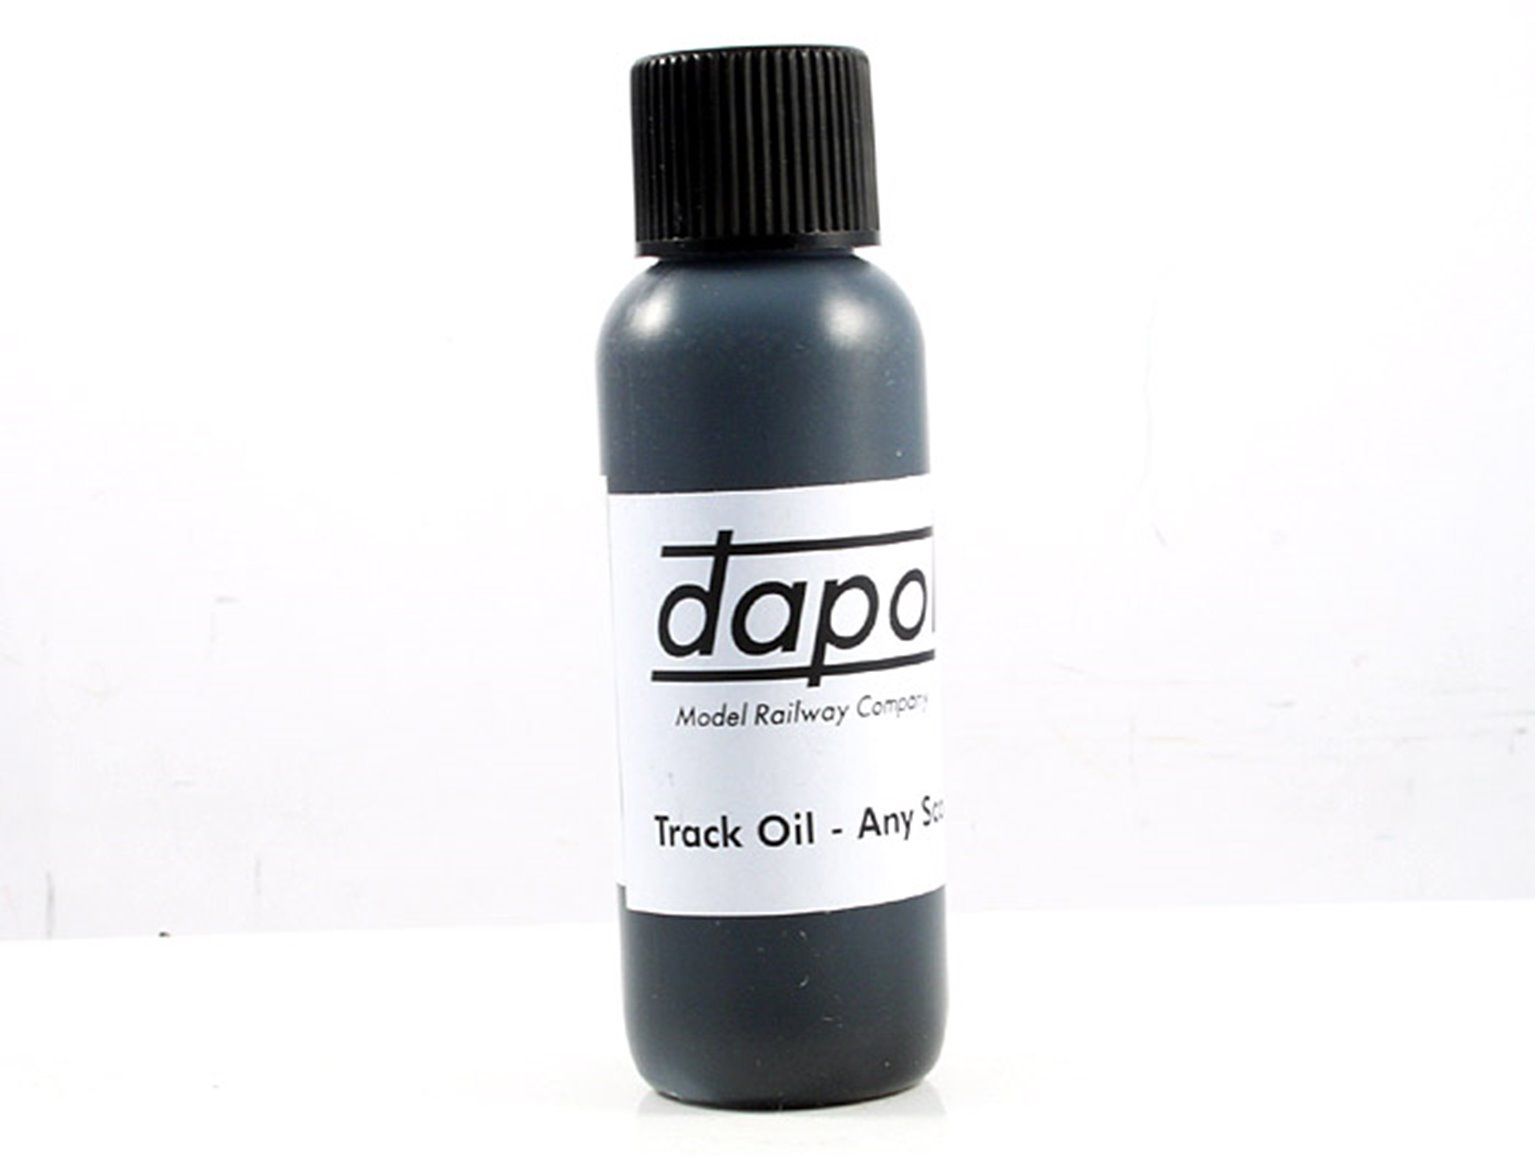 Ballast/Track Oil for any gauge